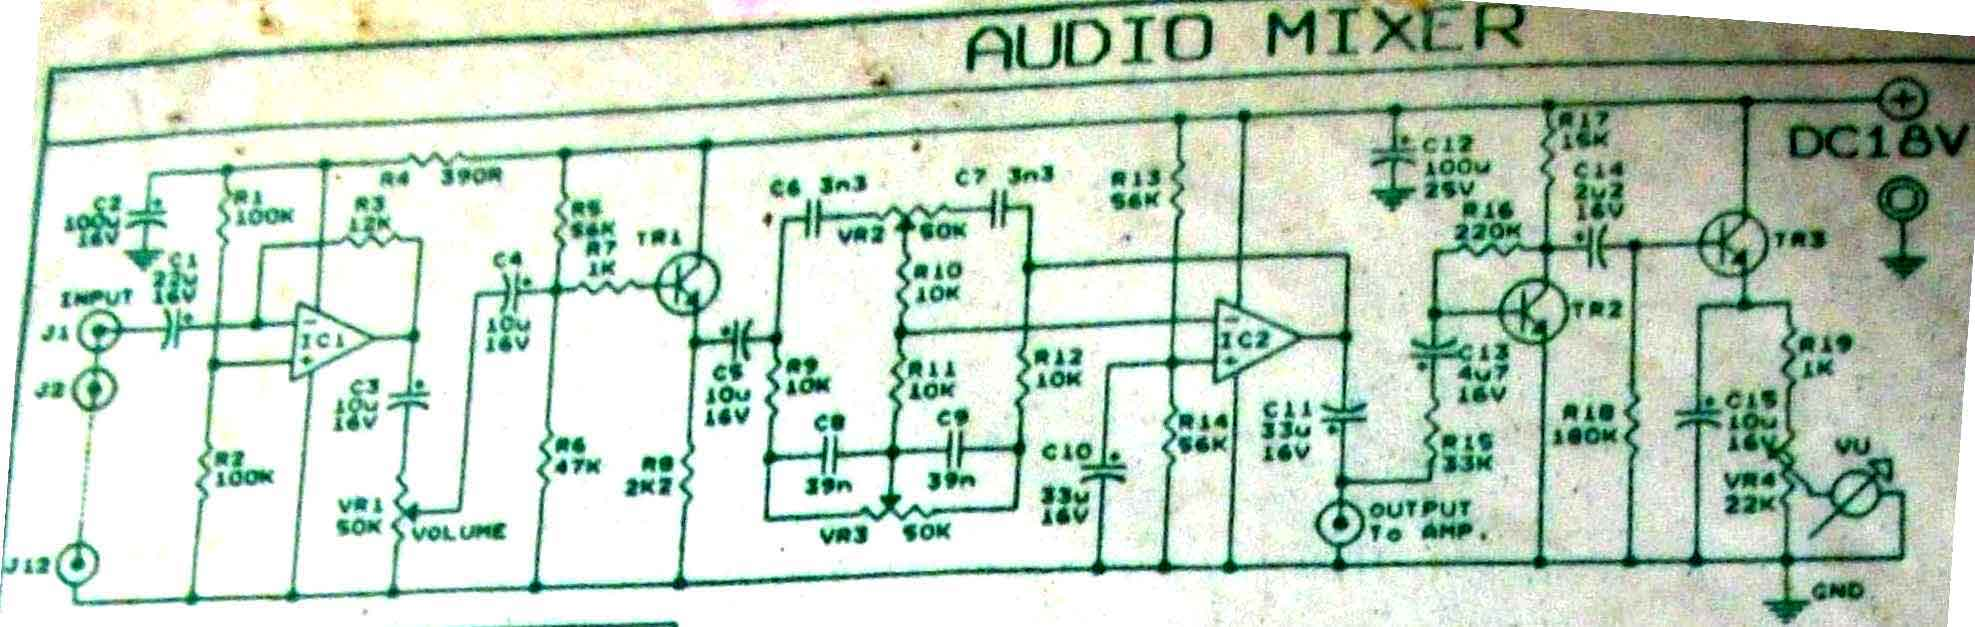 Vu Meter With Audio Mixer Circuit Measuring And Test Telephonerelatedcircuit Electricalequipmentcircuit